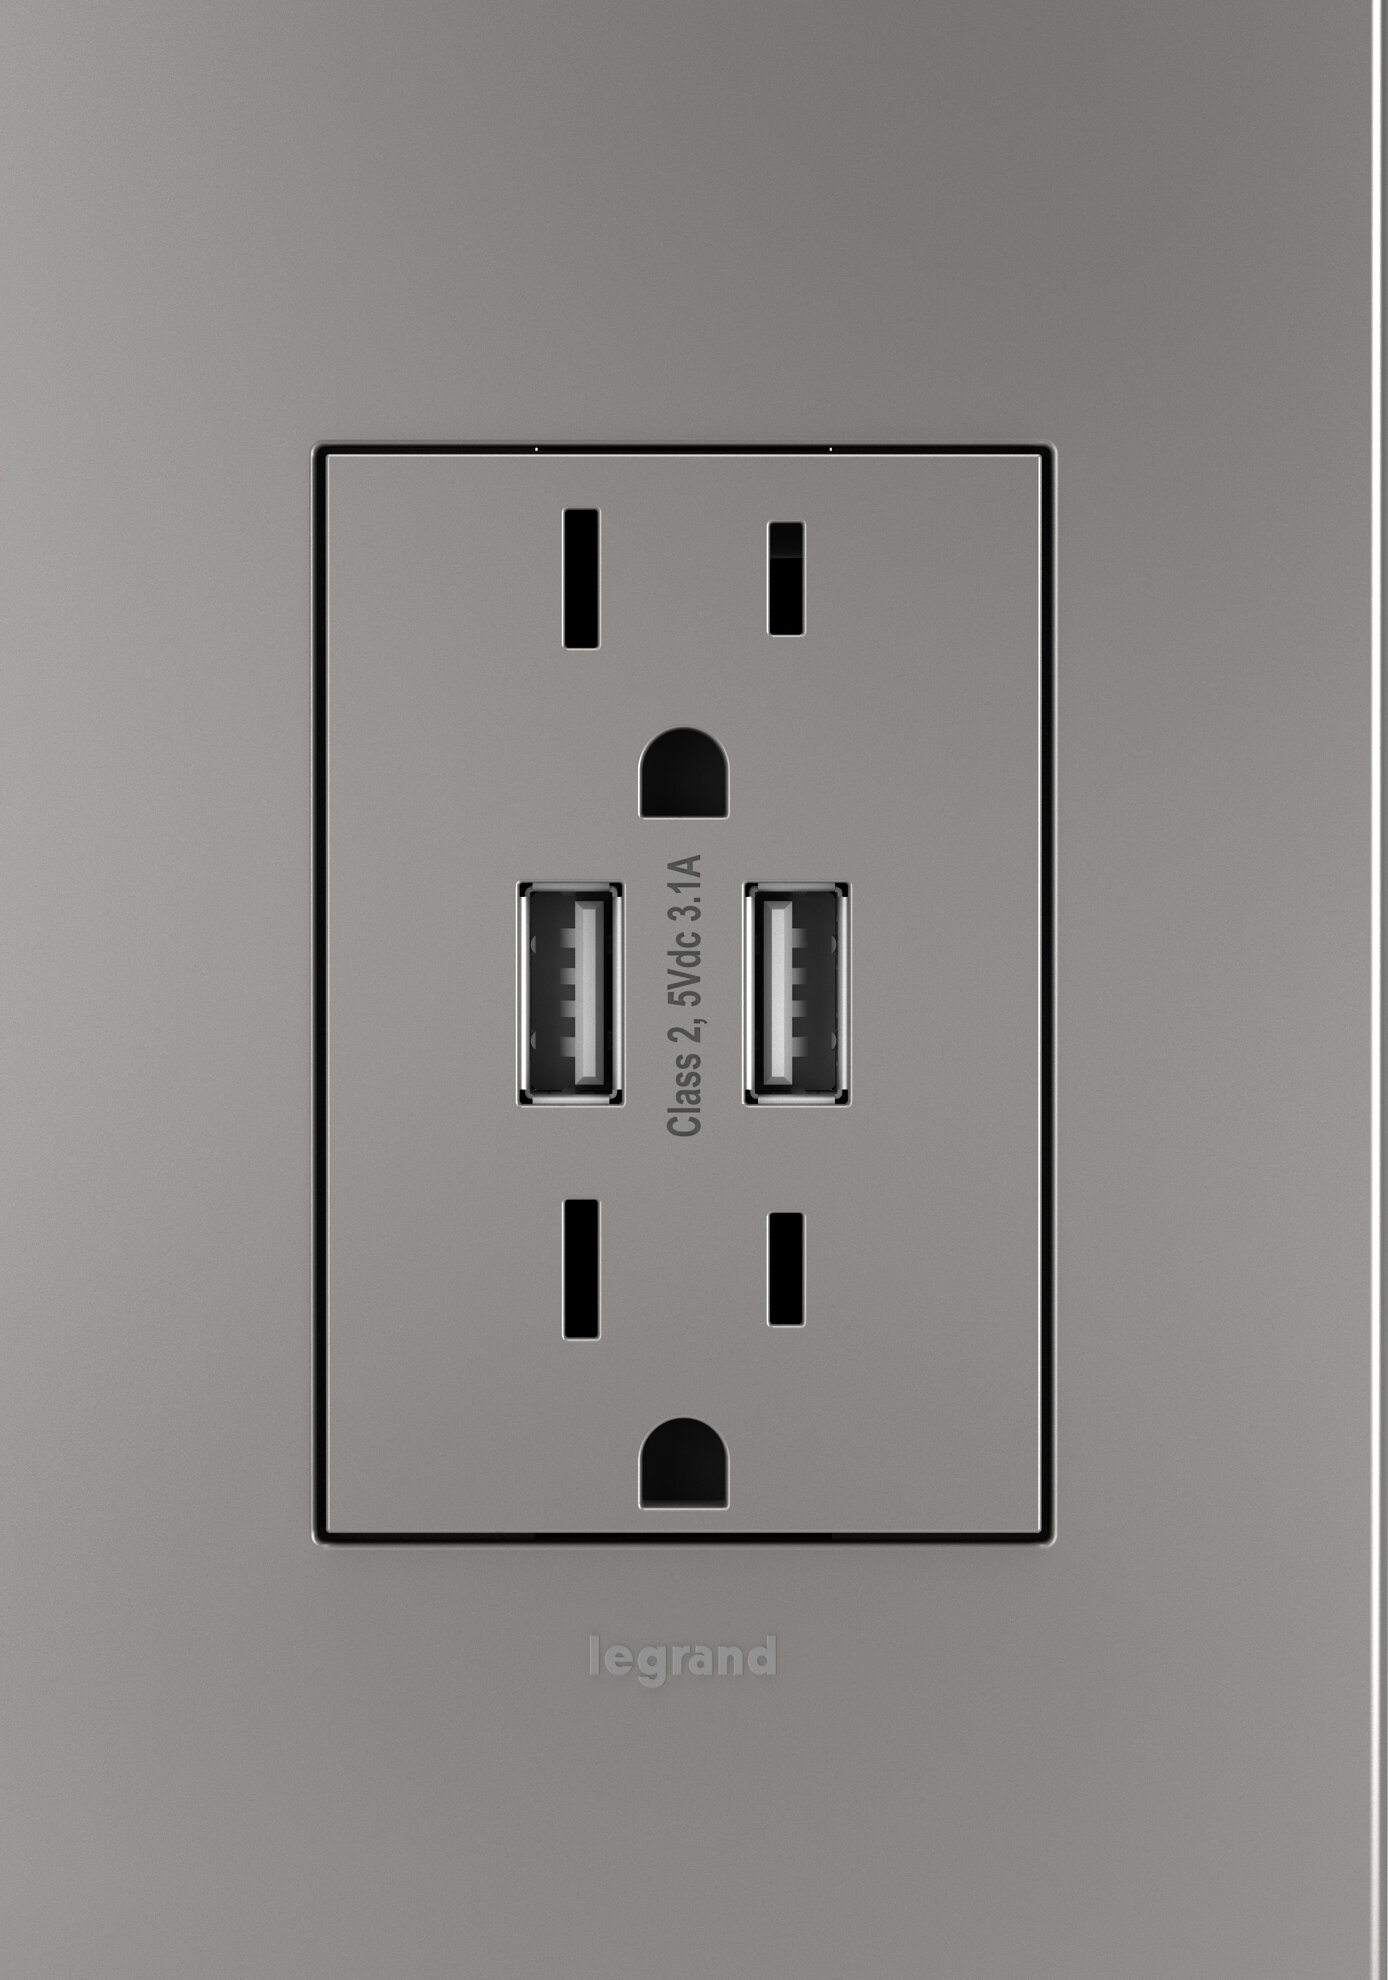 Legrand Adorne® Dual USB Combo Outlet | Wayfair